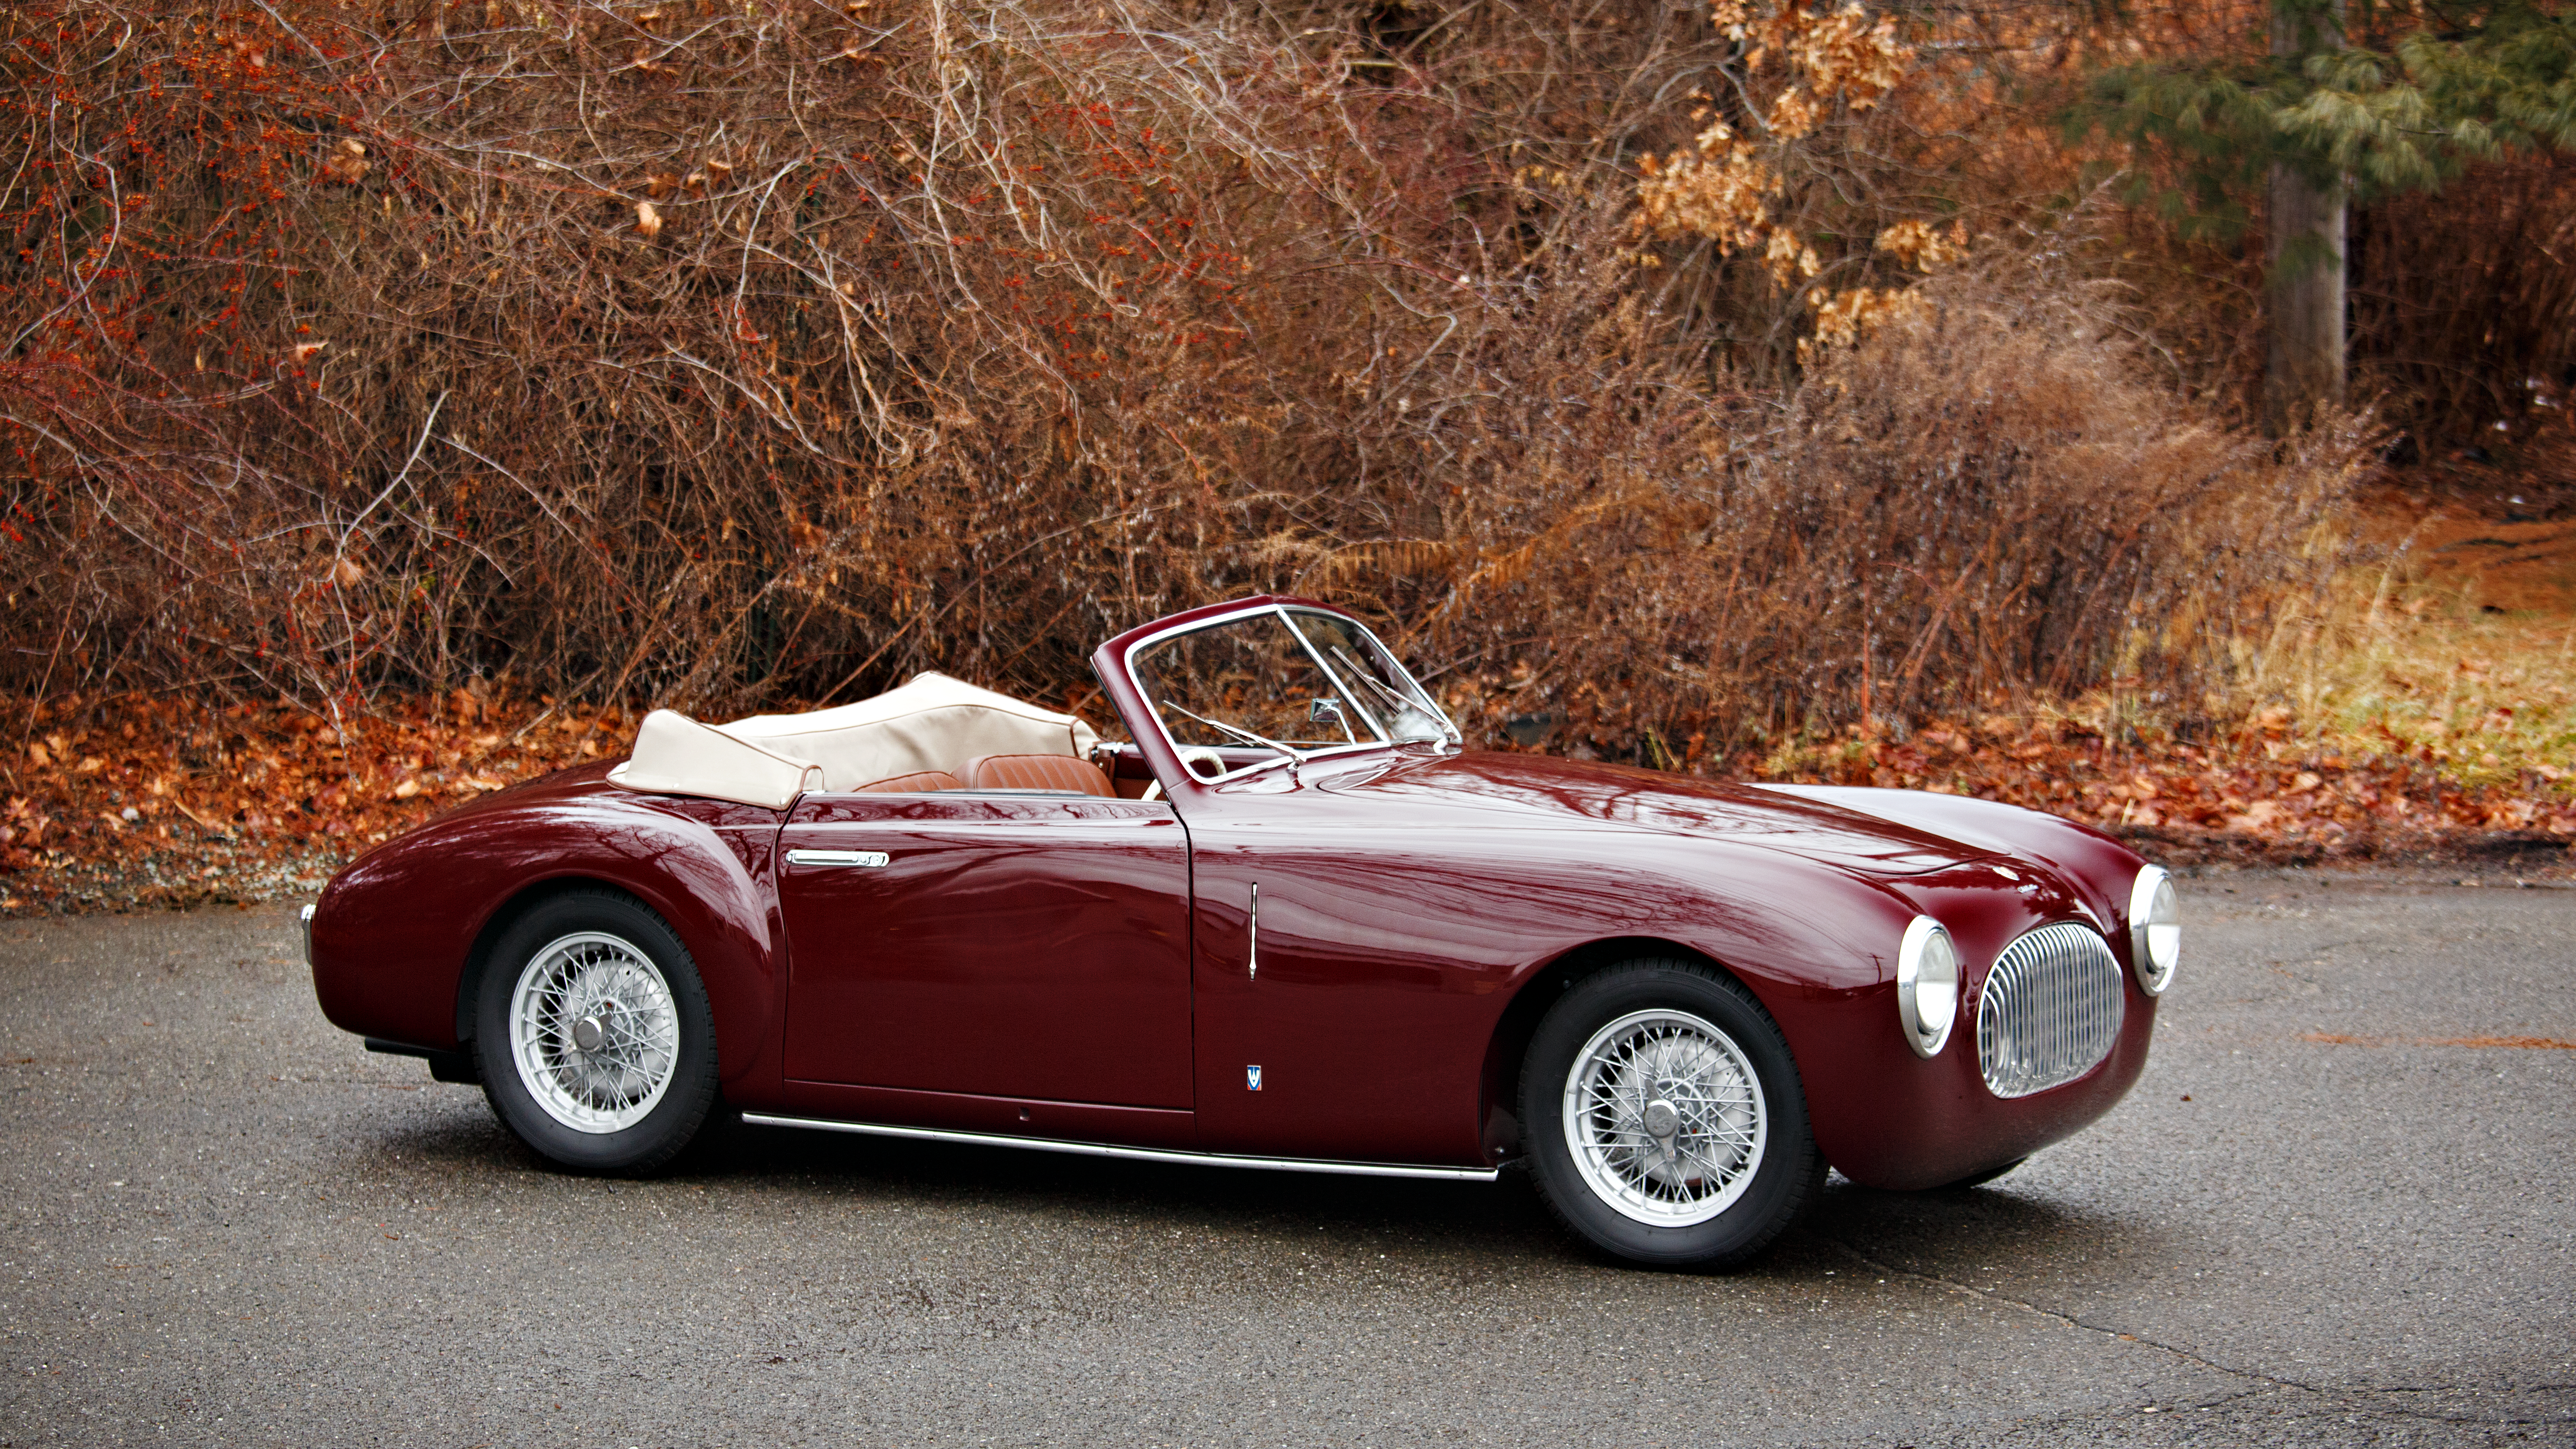 One of only approximately 60 Cisitalia 202 SC Cabriolets produced, this car features coachwork by Vignale